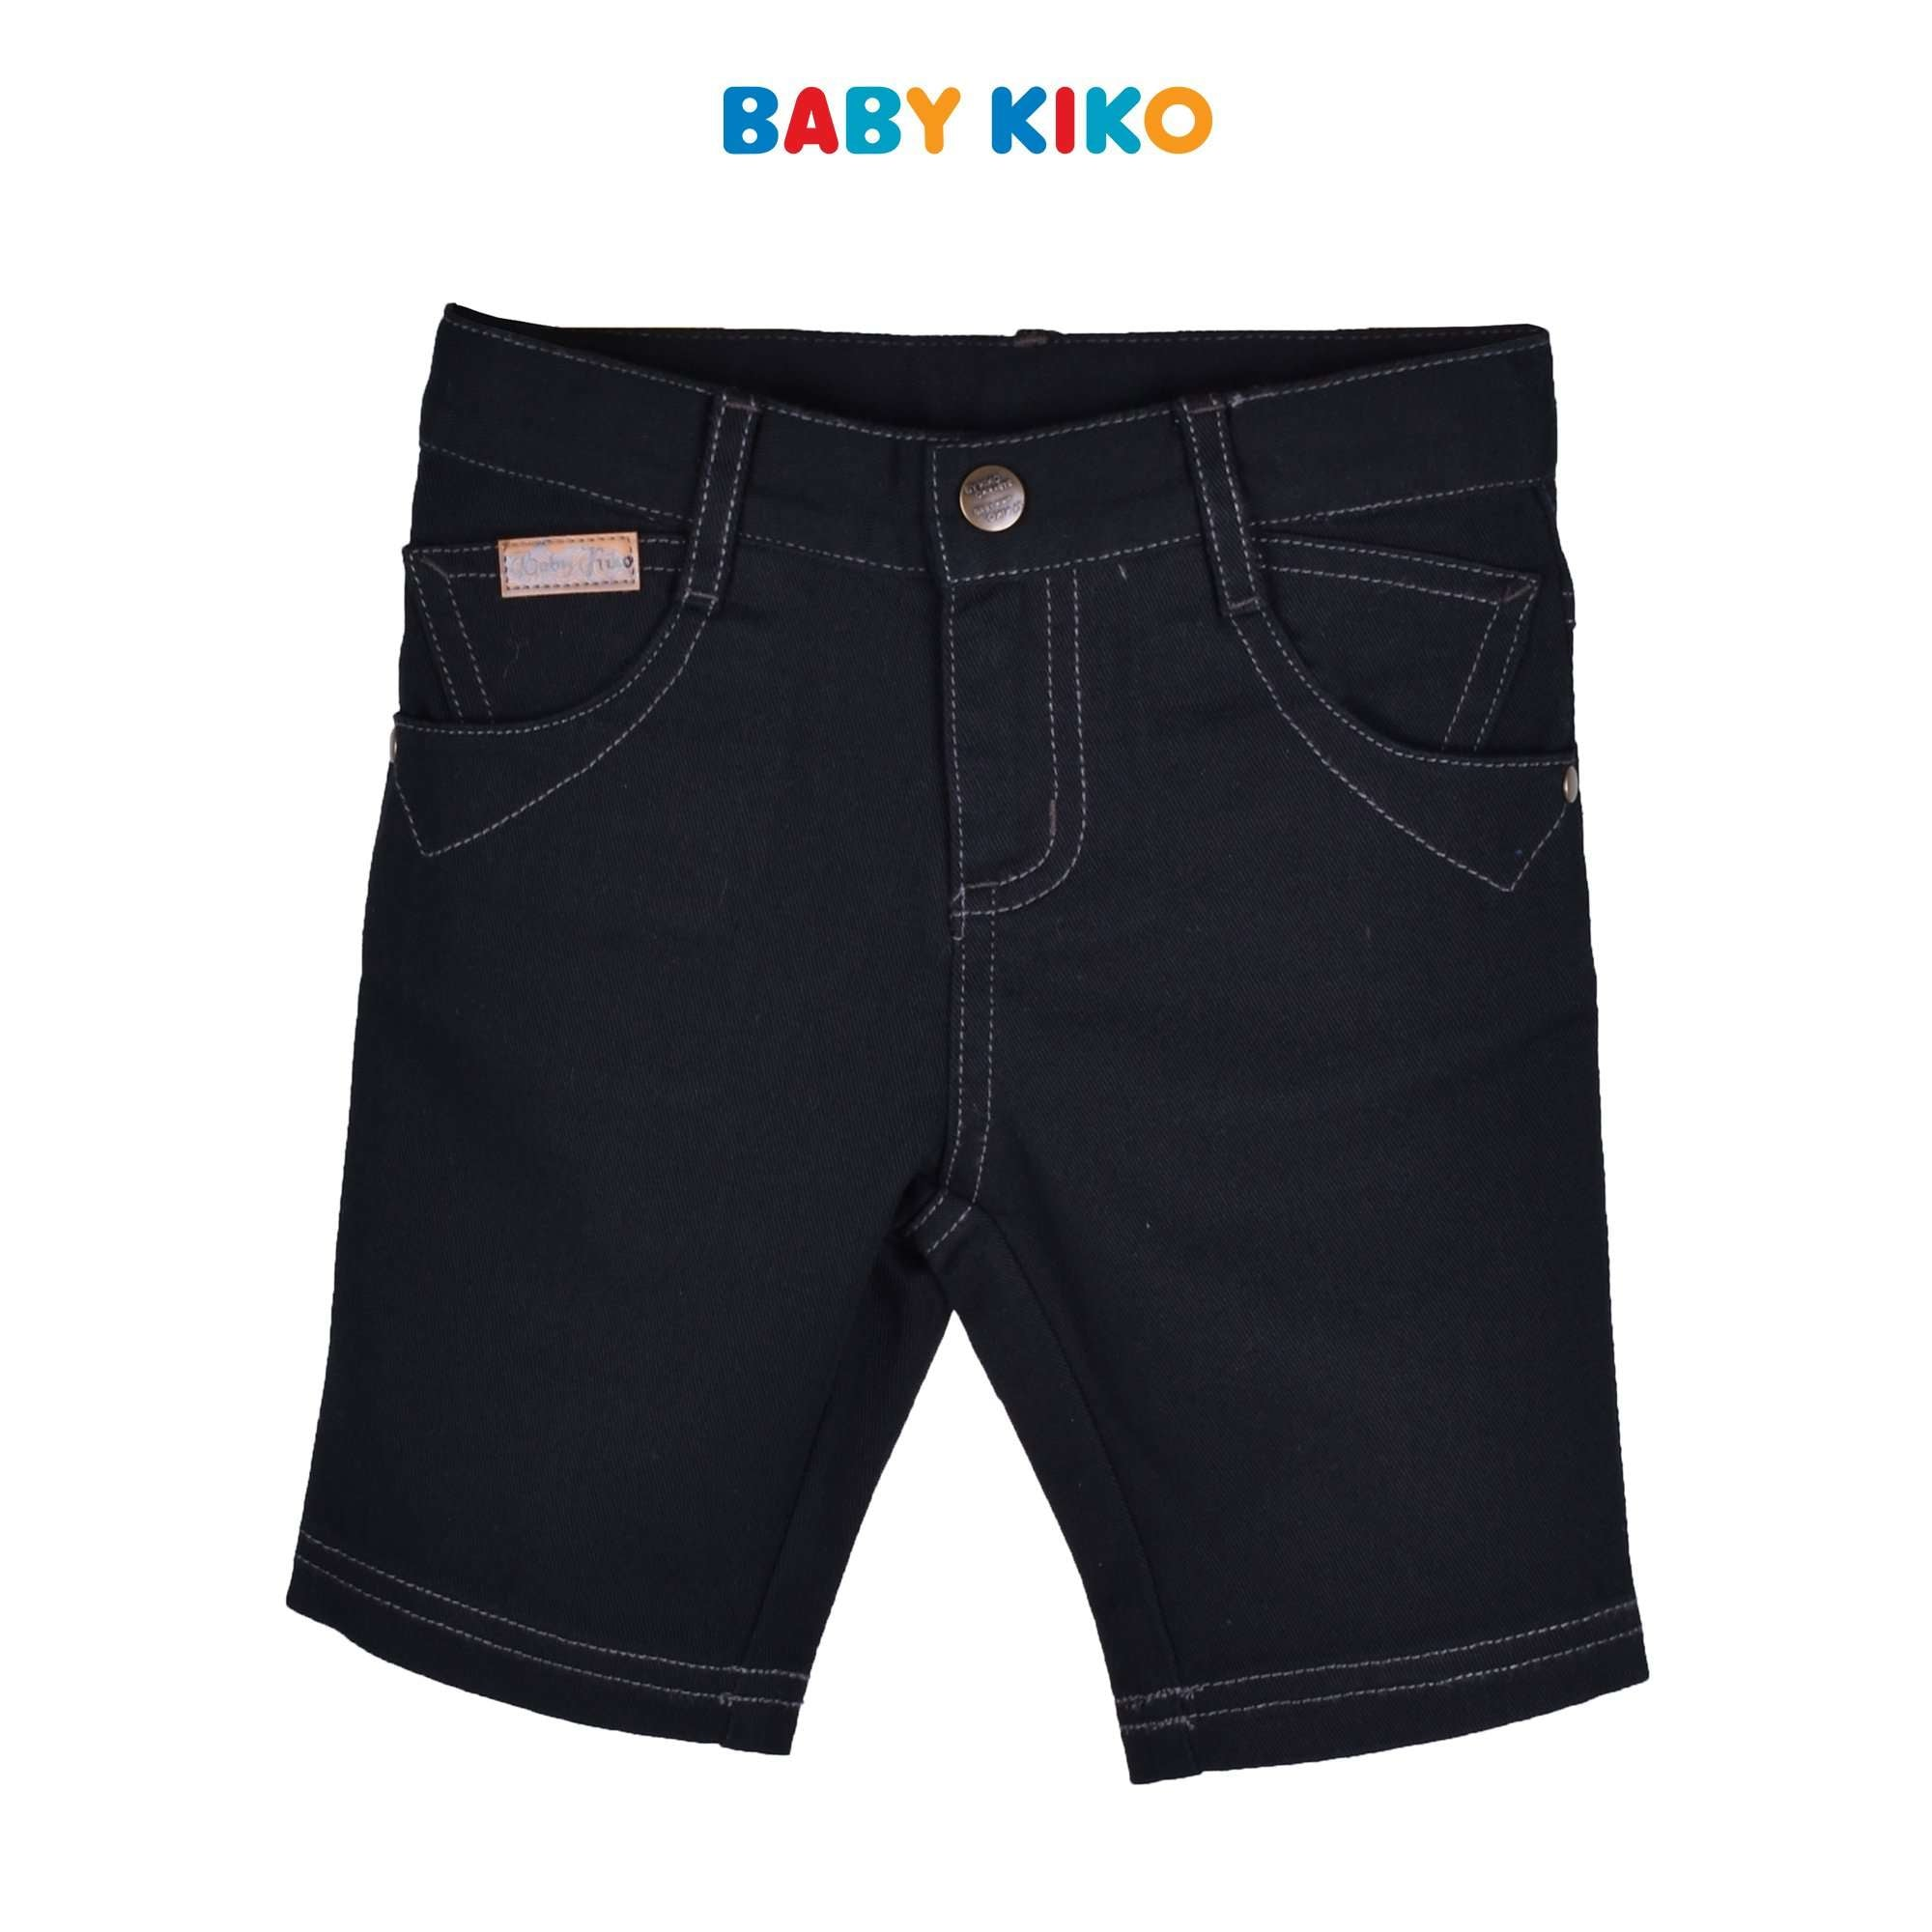 Baby KIKO Toddler Boy Bermuda 335134-241 : Buy Baby KIKO online at CMG.MY